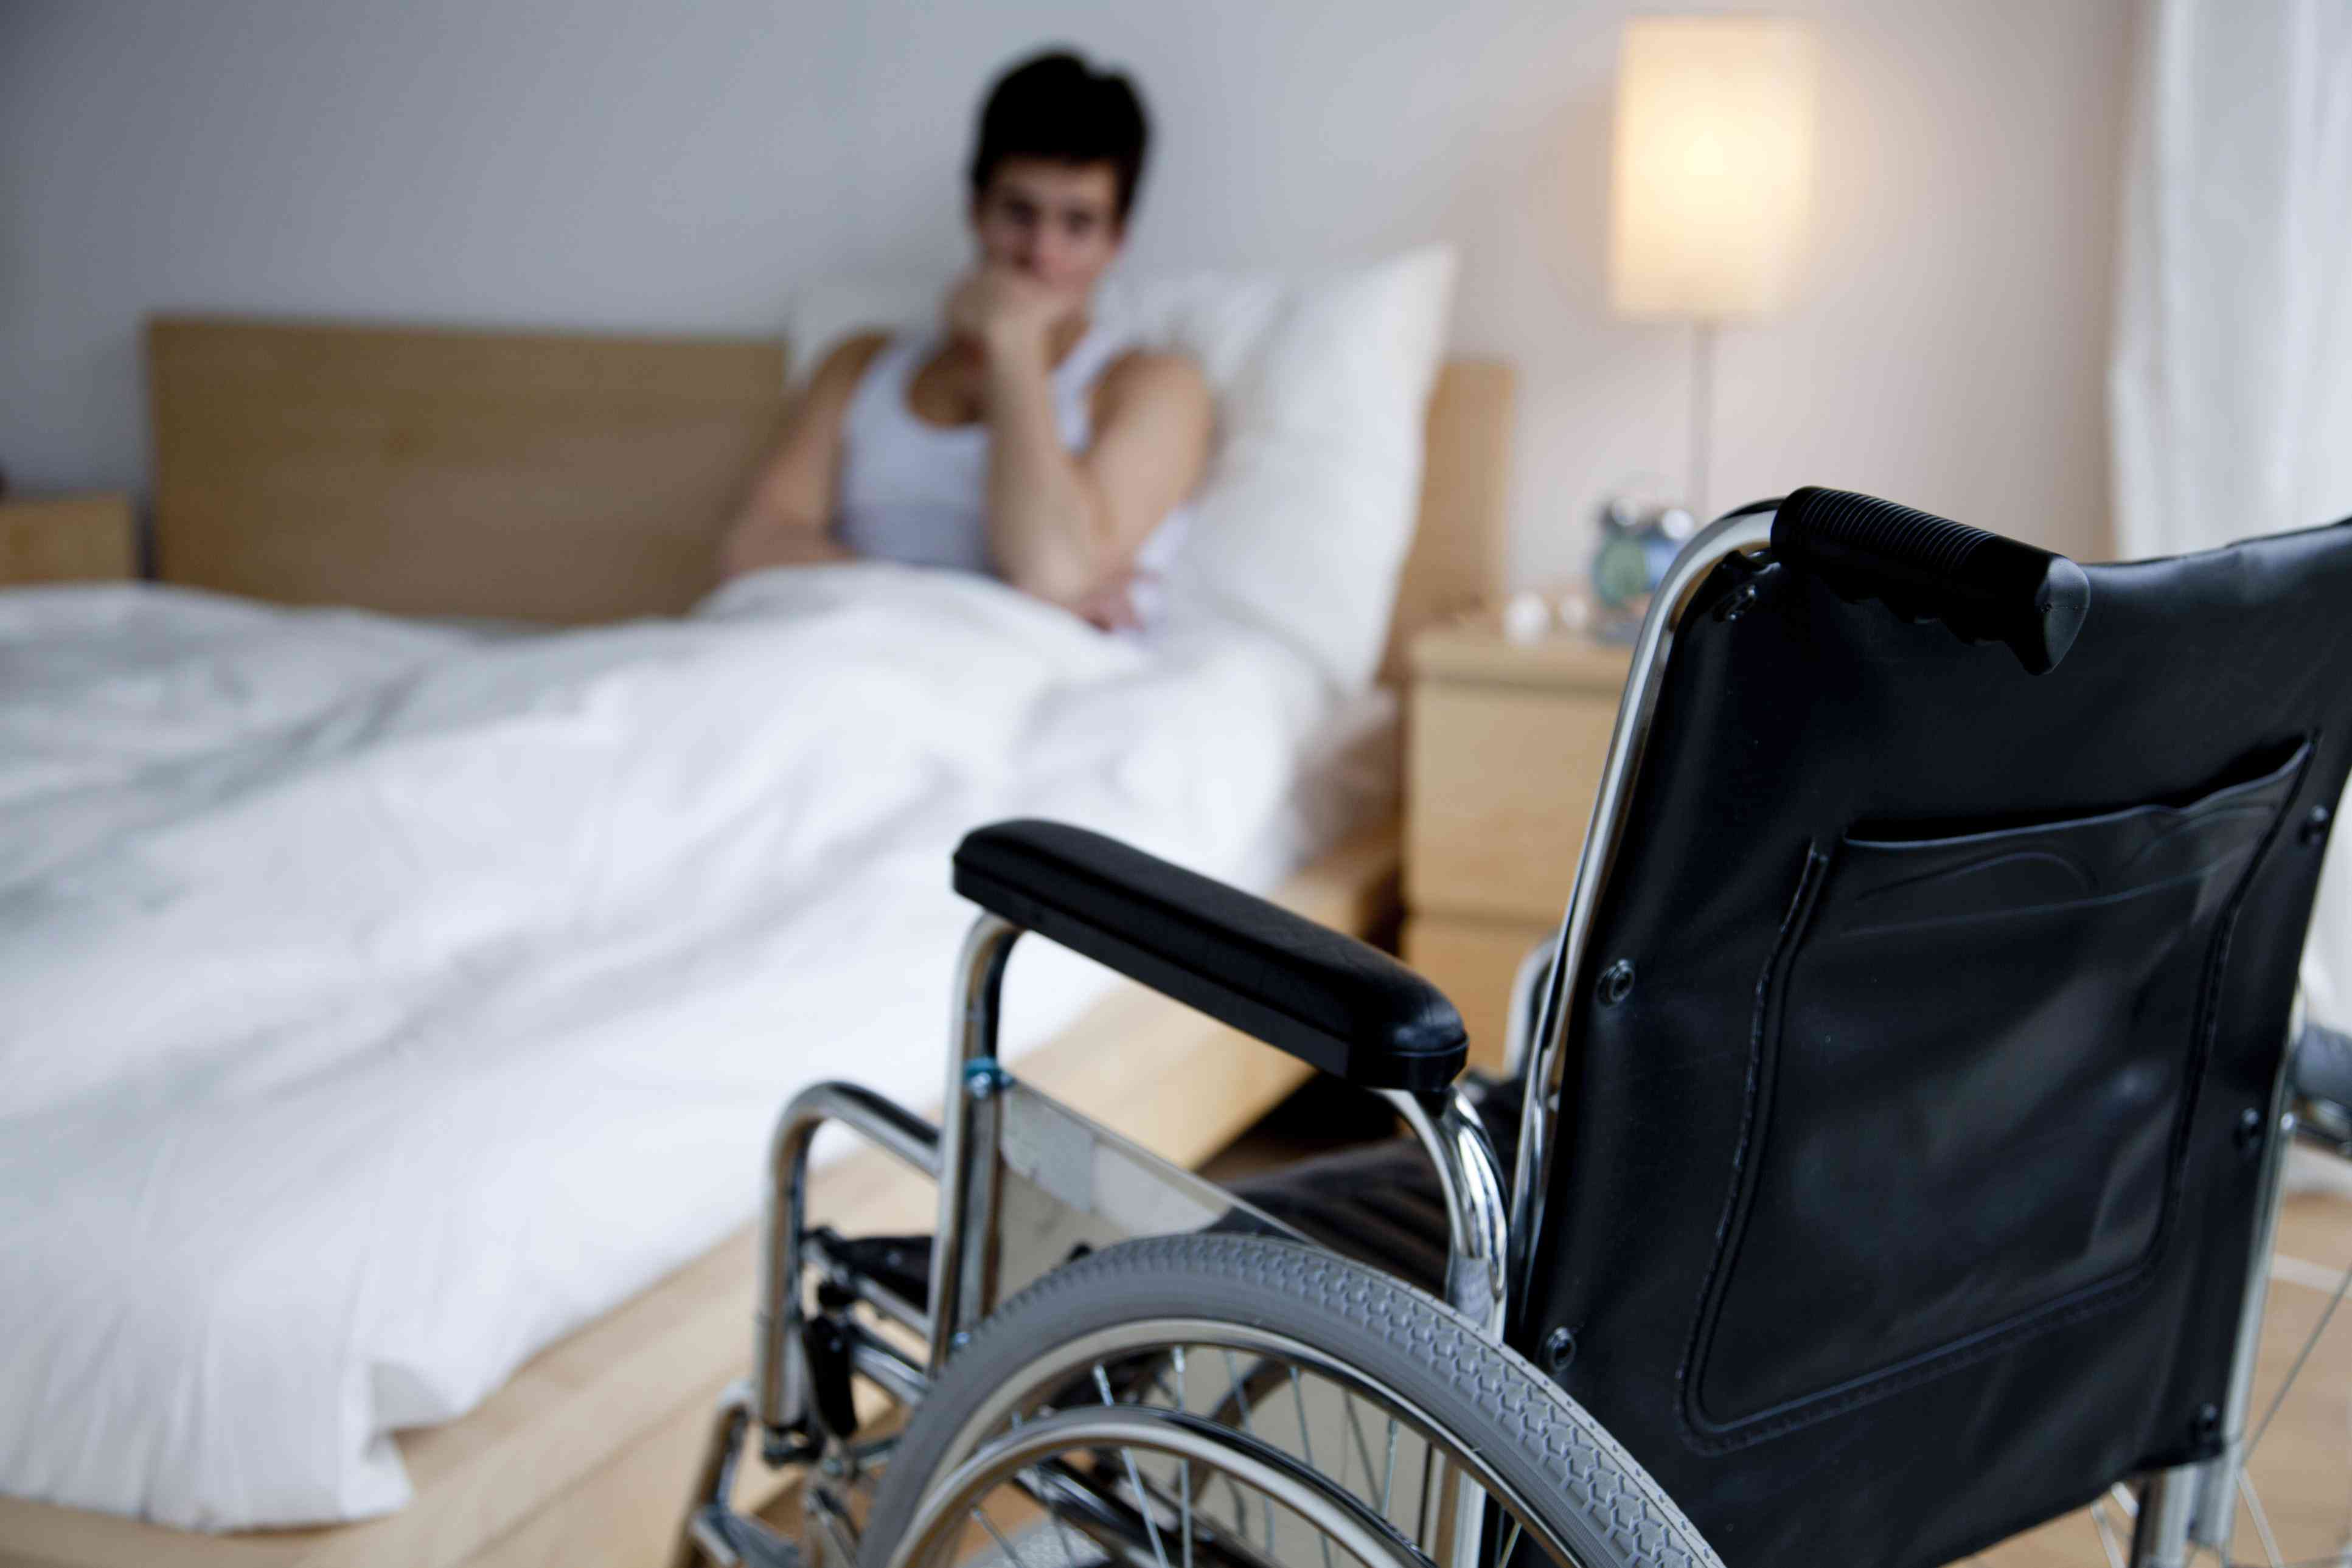 Disabled man in bed, out of reach of wheelchair